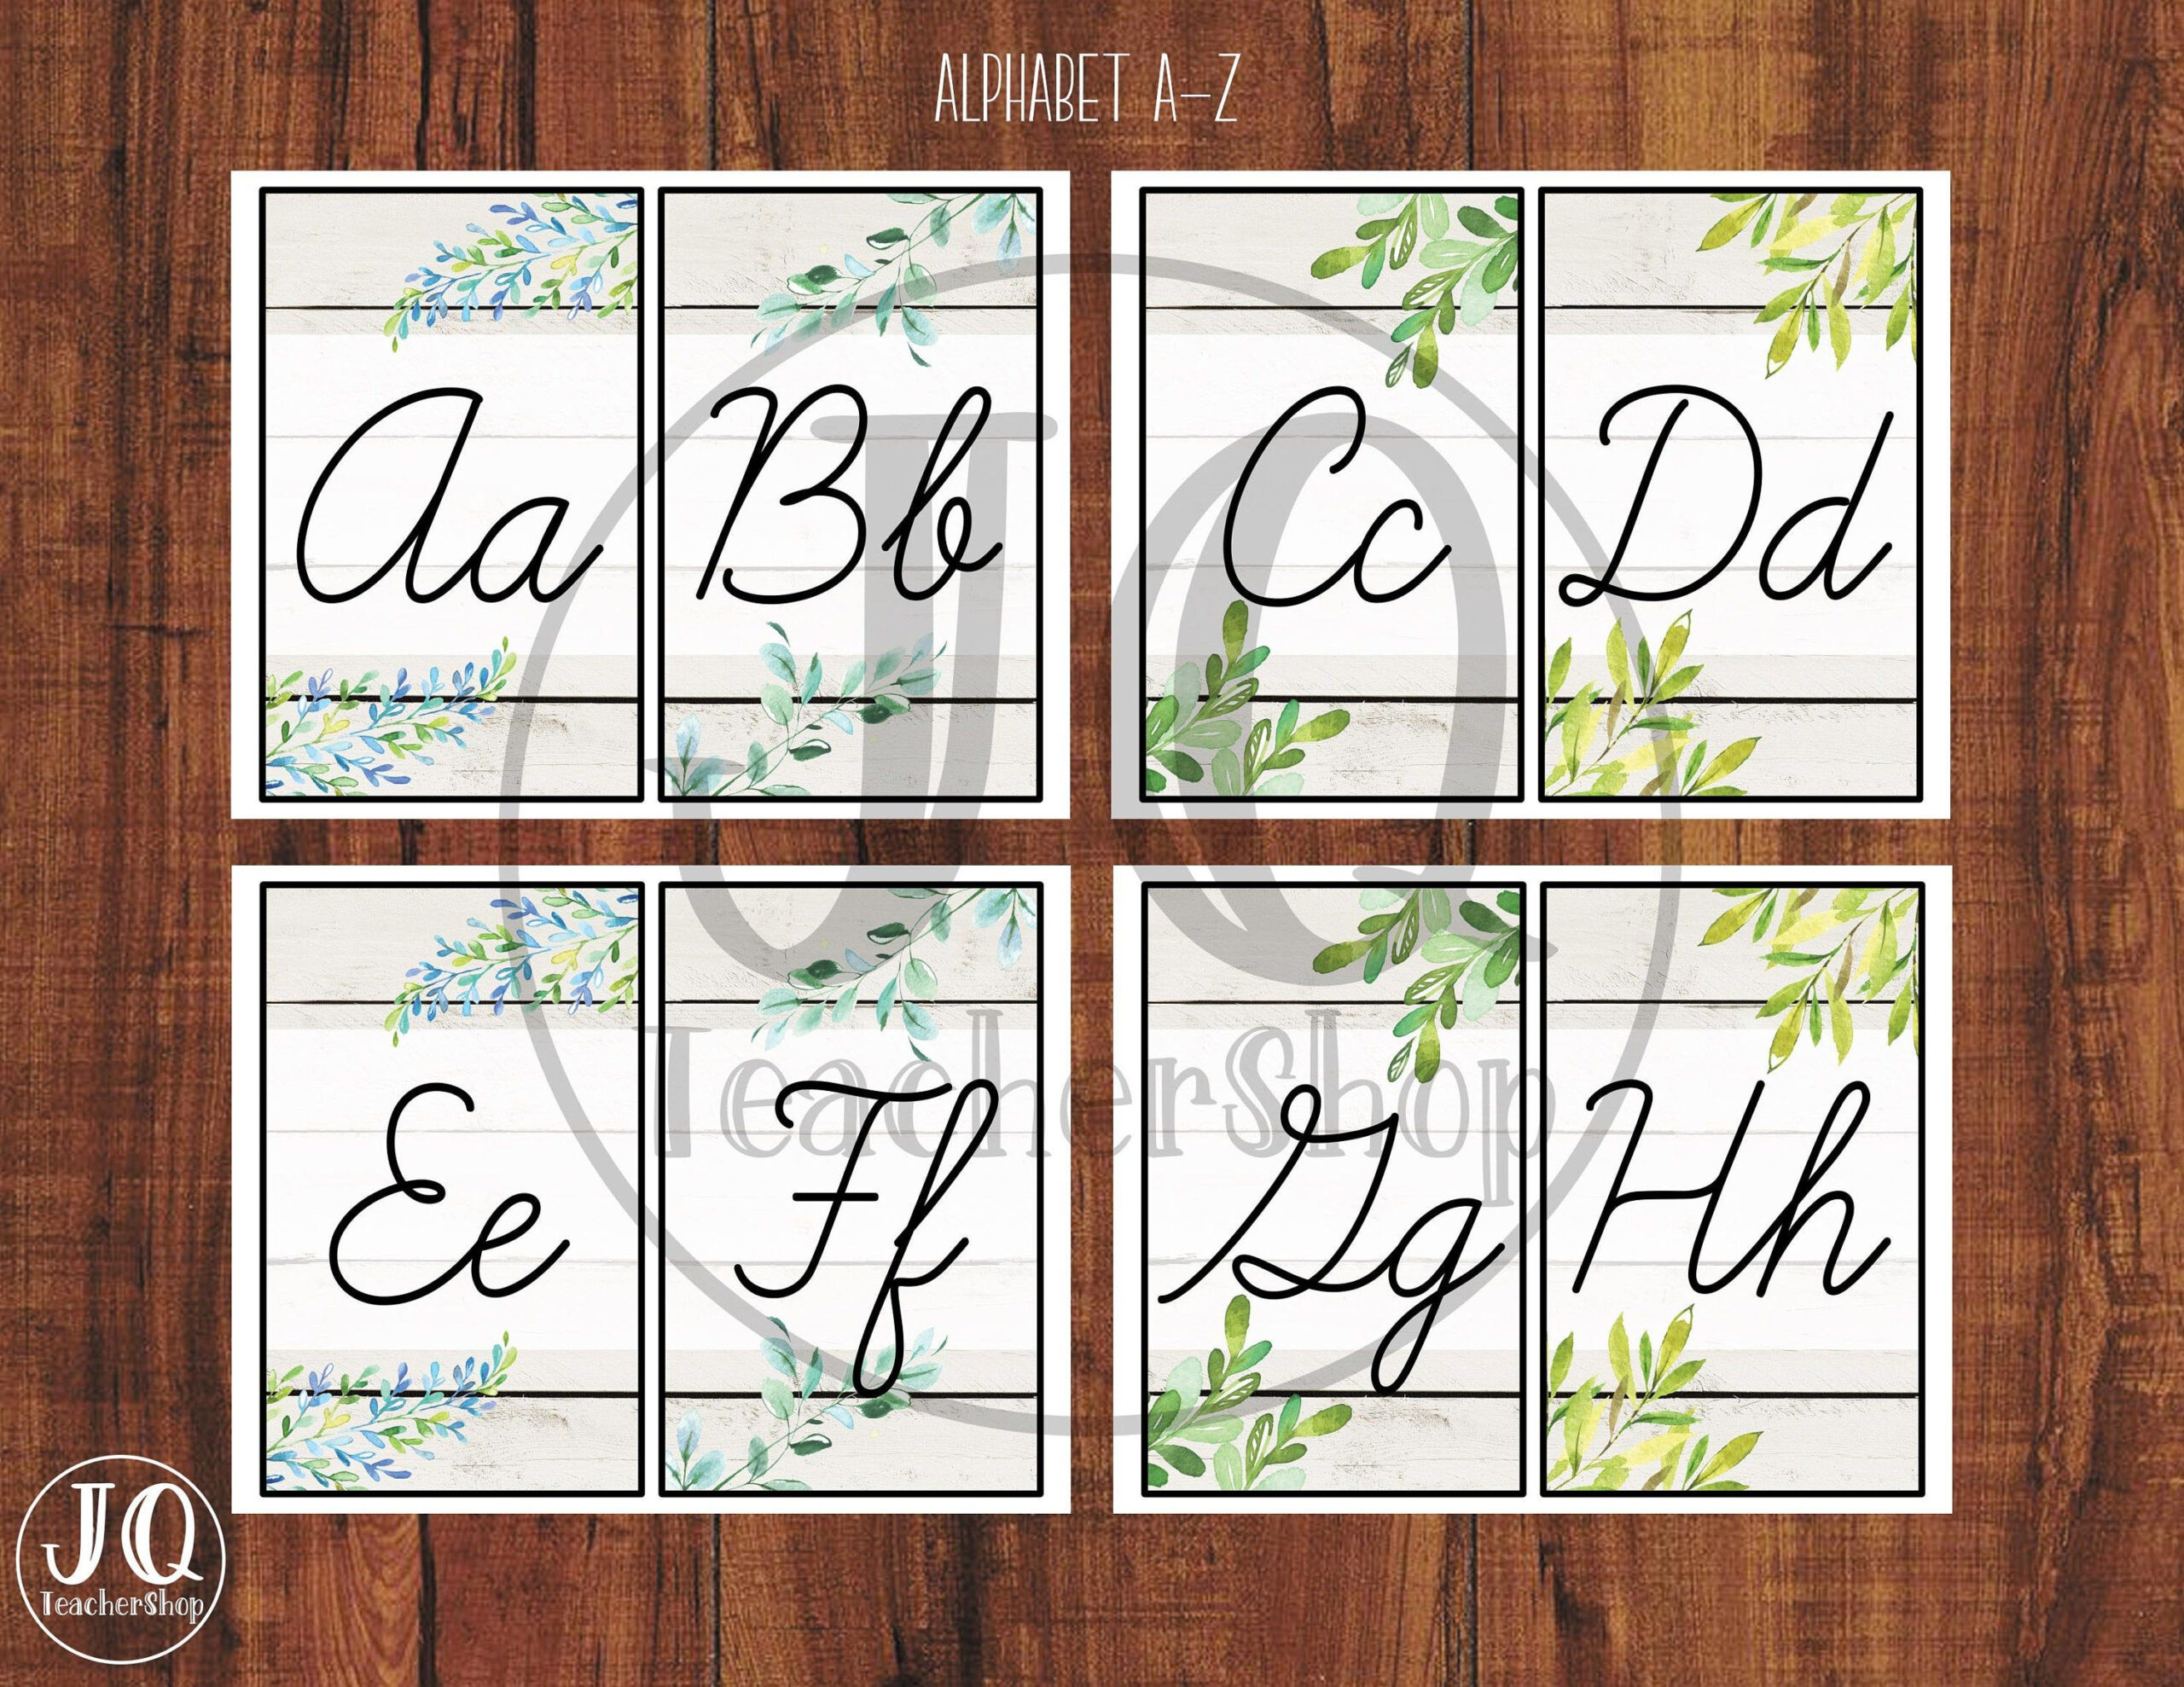 Printable Cursive Alphabet Wall Poster, Classroom Decor